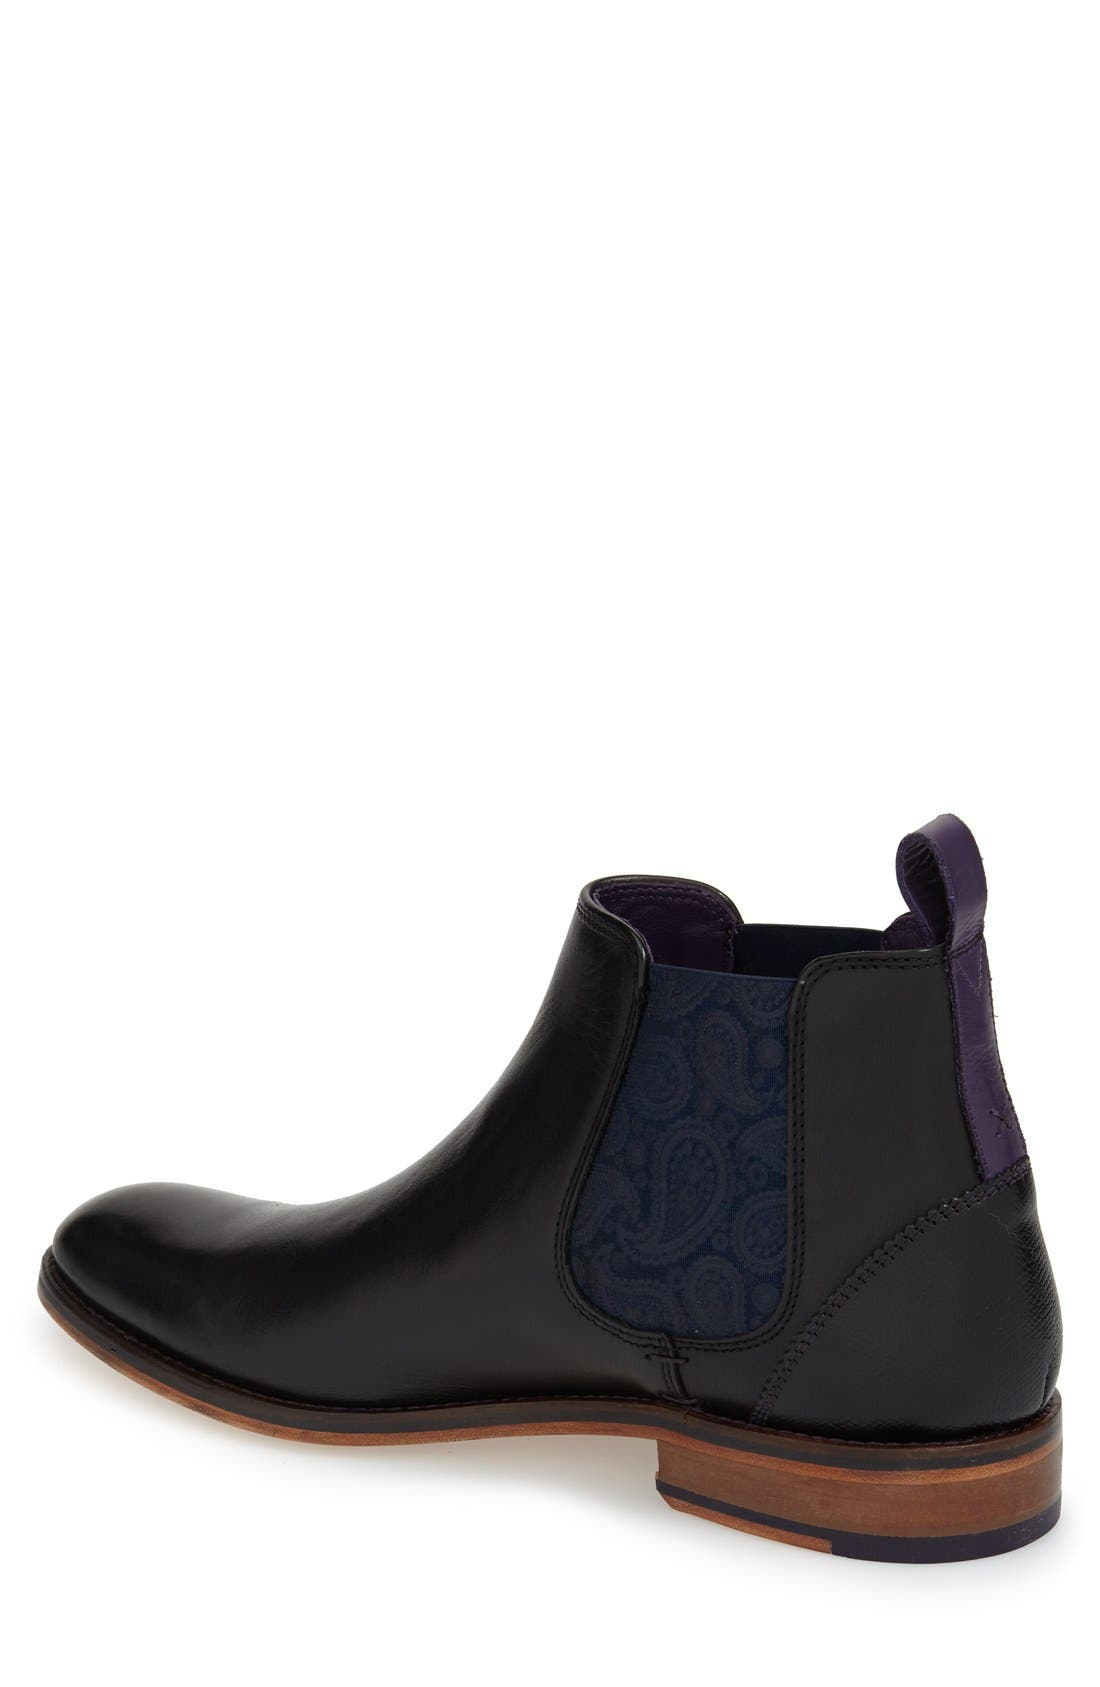 'Camroon 4' Chelsea Boot,                             Alternate thumbnail 8, color,